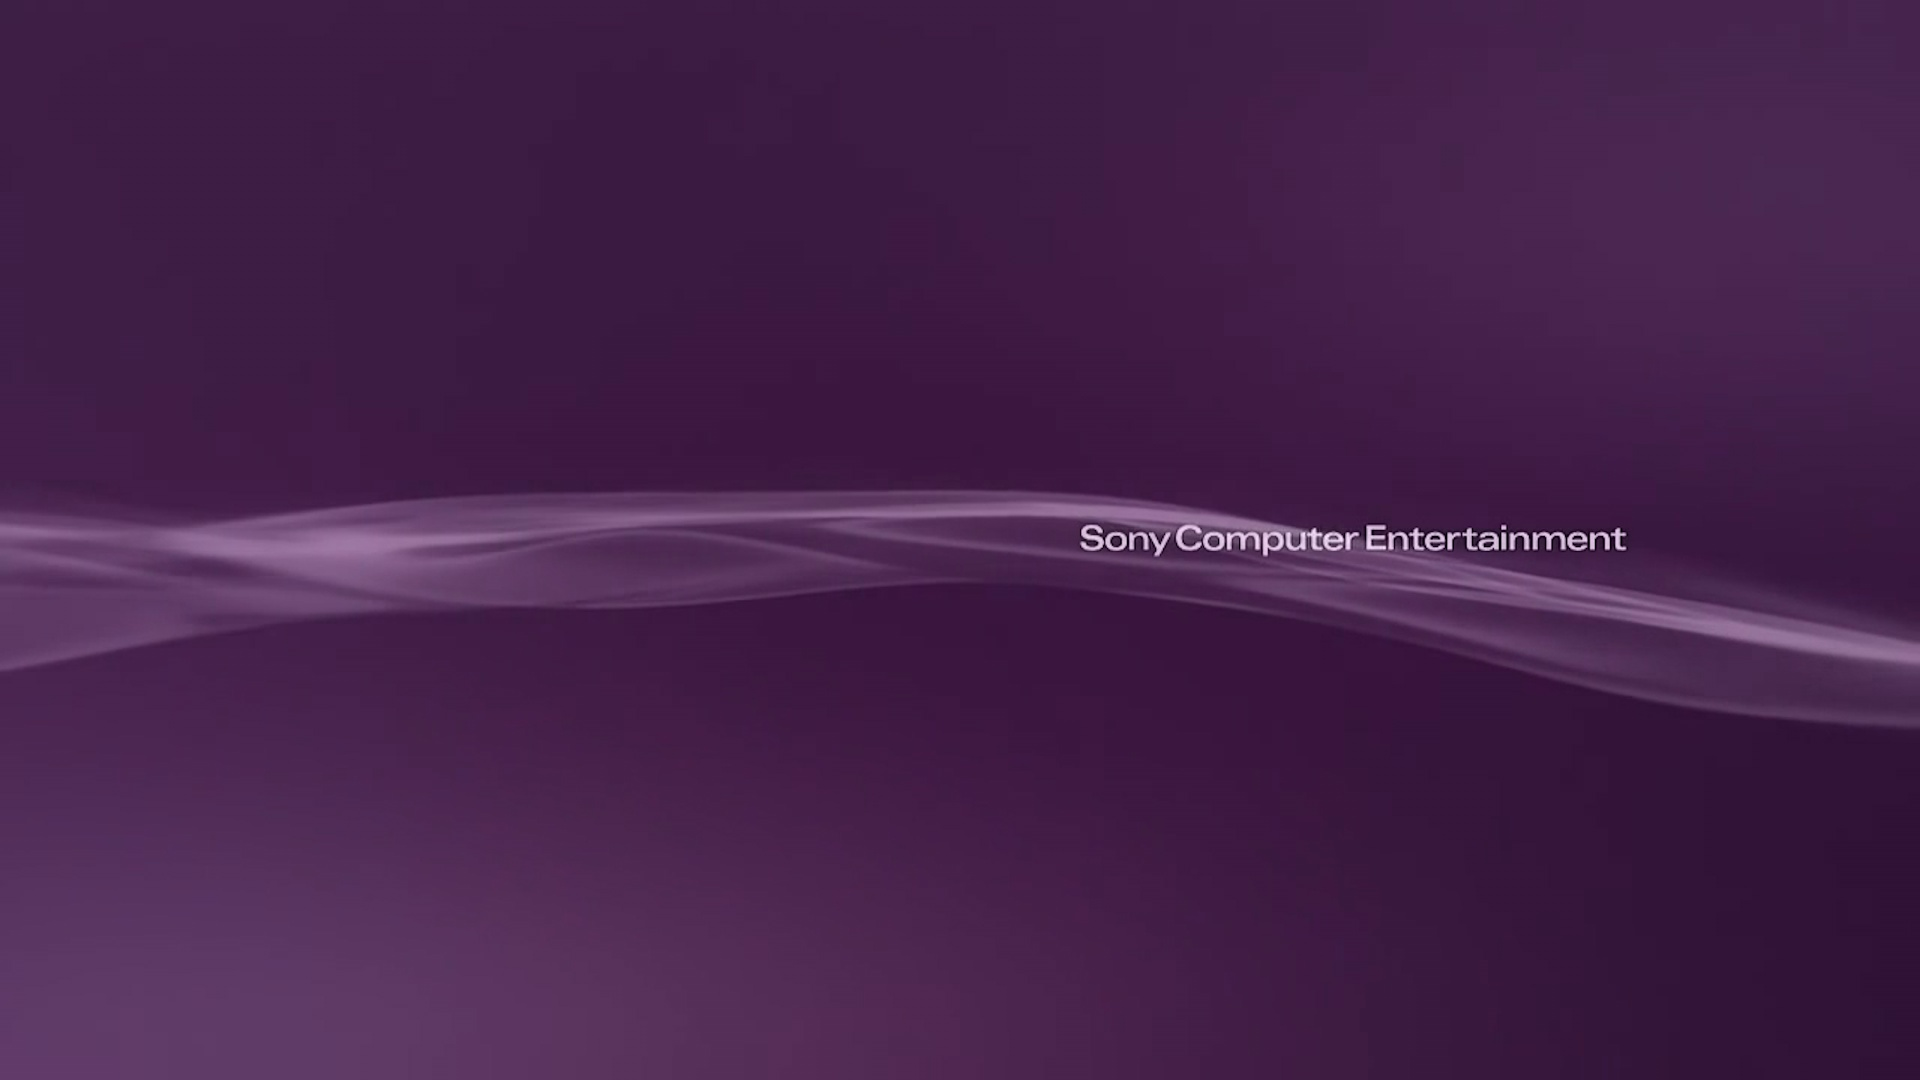 Sony Computer Entertainment (2006)